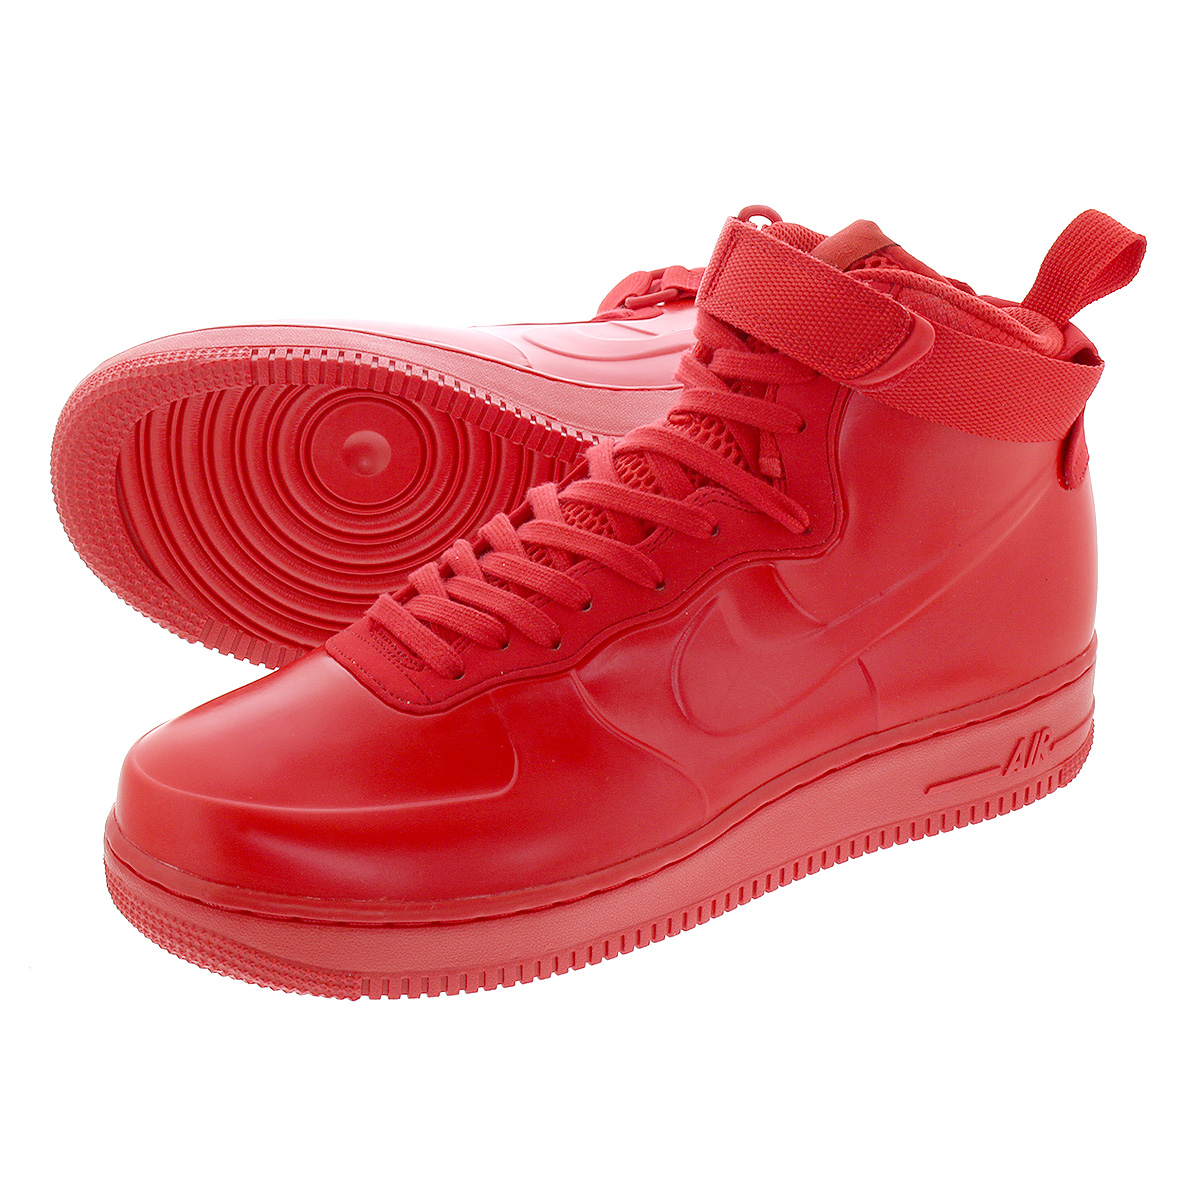 NIKE AIR FORCE 1 FOAMPOSITE CAP NA ナイキ エアフォース 1 フォーム ポジット カップ NA UNIVERSITY RED/UNIVERSITY RED bv1172-600